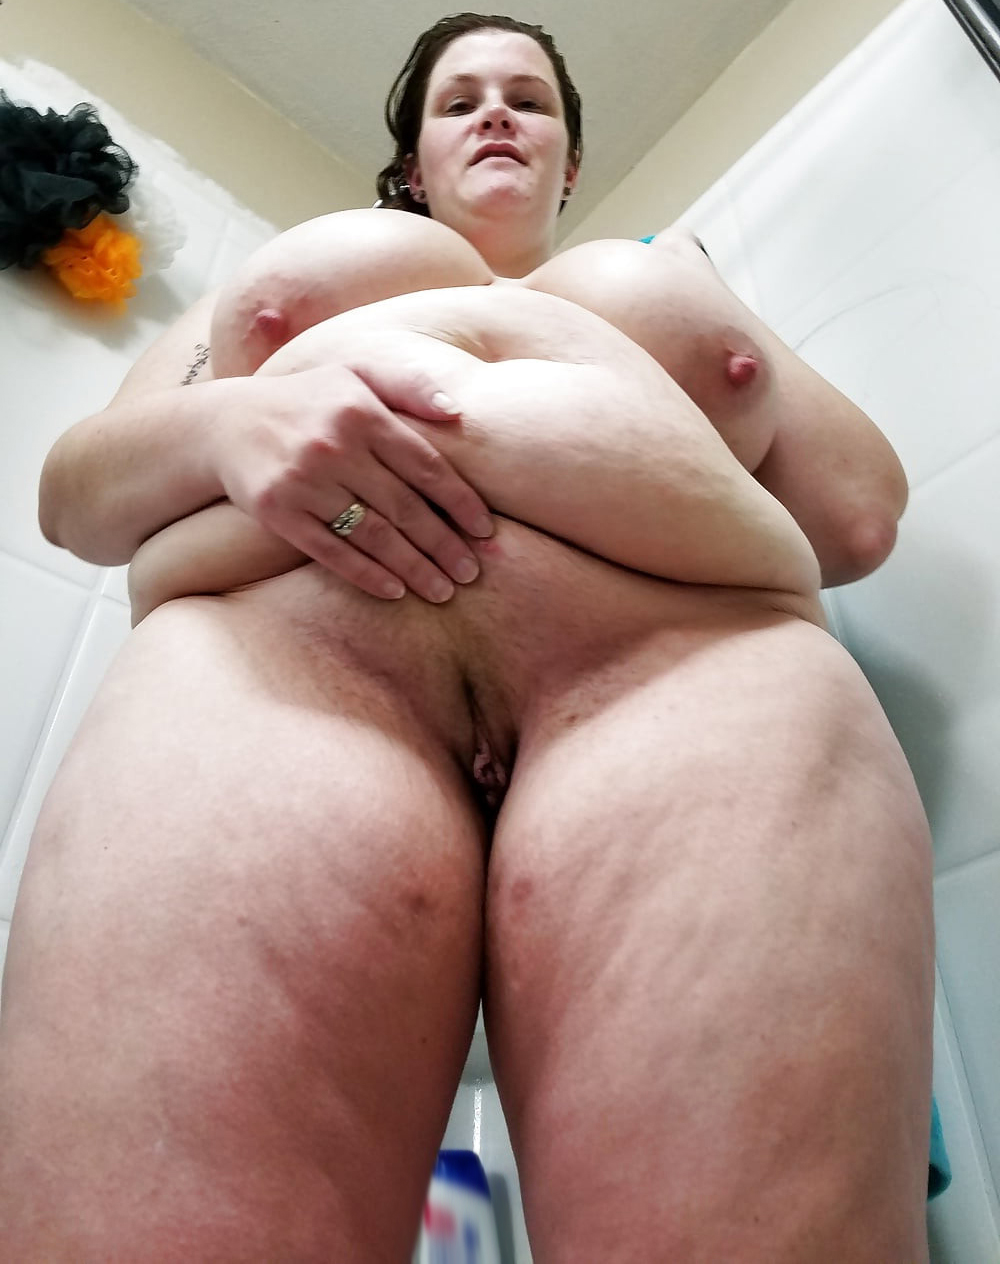 Nude pics of people